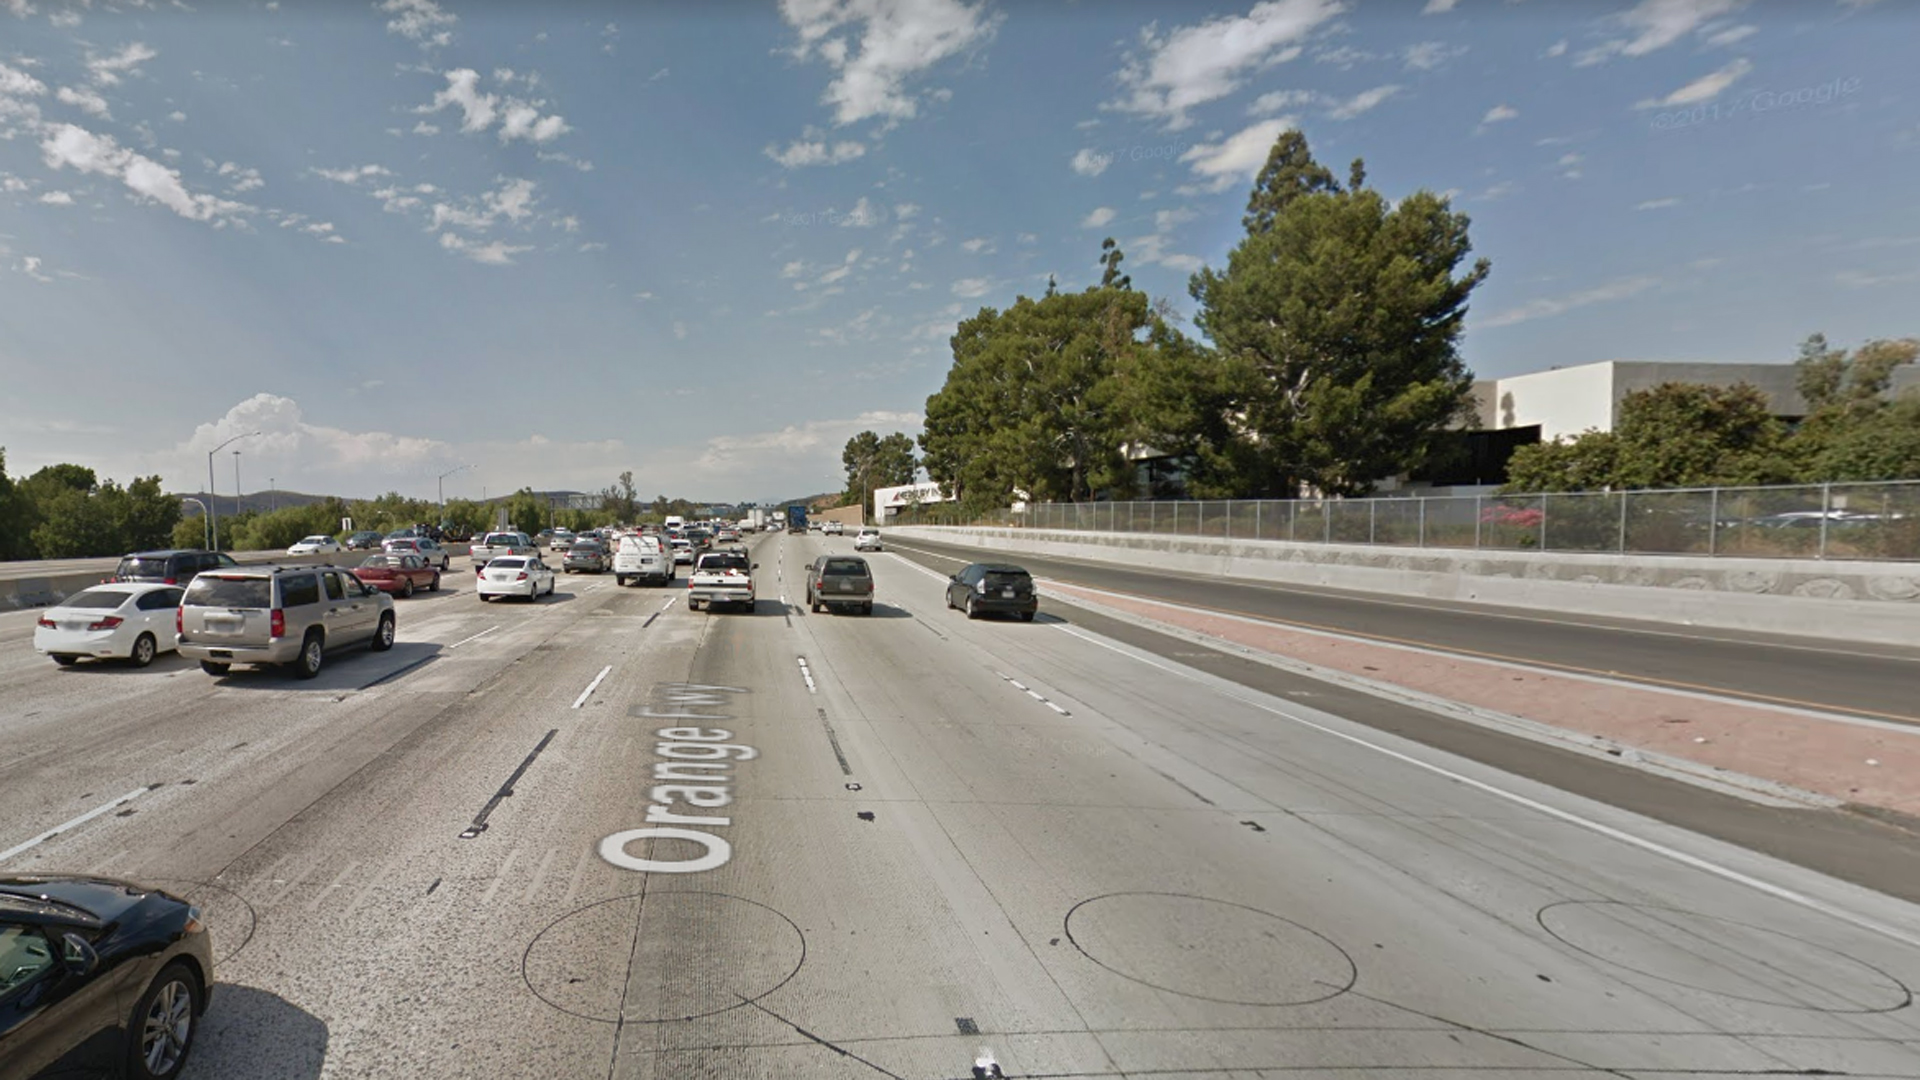 The northbound 57 Freeway, just north of Imperial Highway, in Fullerton, as pictured in a Google Street View image in July of 2017.